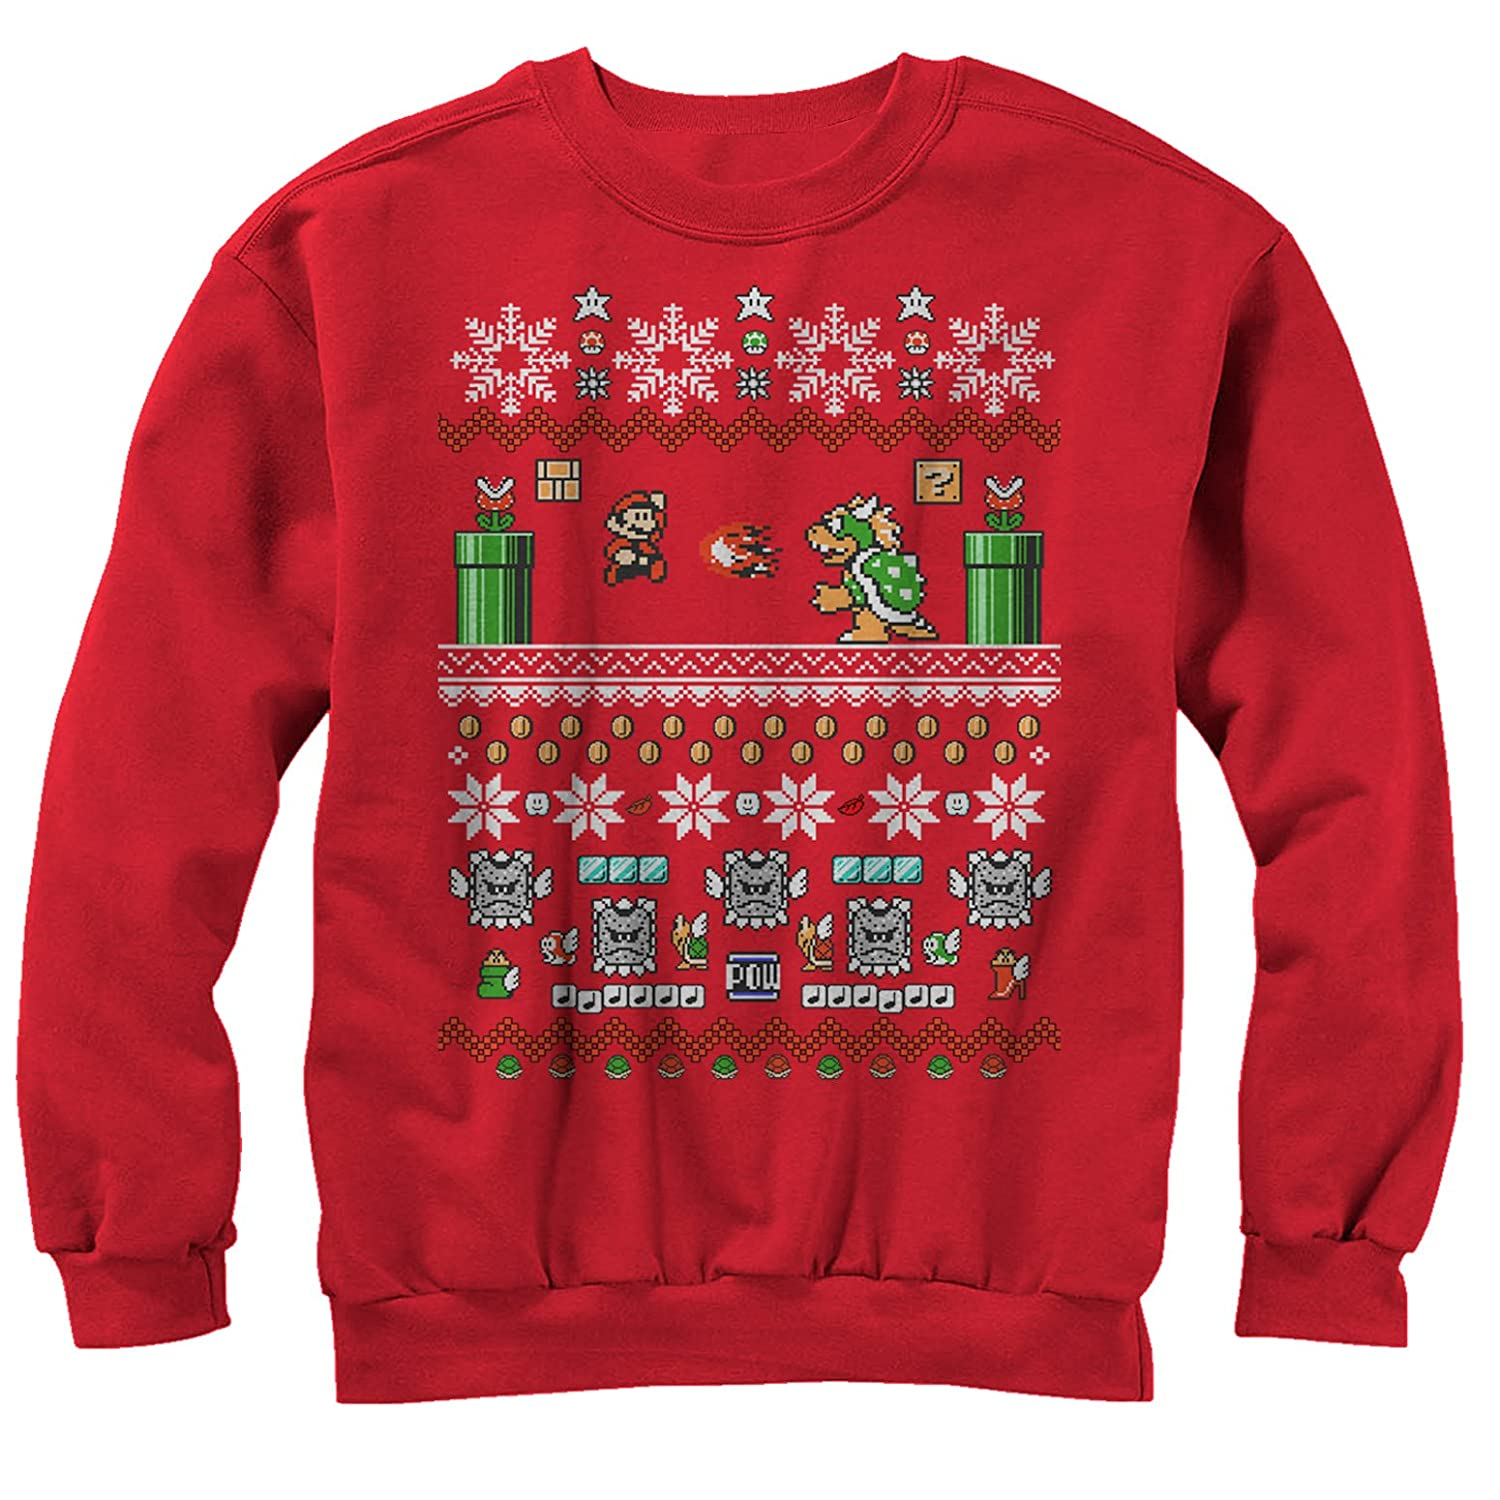 b7ae309c Nintendo Men's Mario and Bowser Ugly Christmas Sweater Sweatshirt at Amazon  Men's Clothing store: